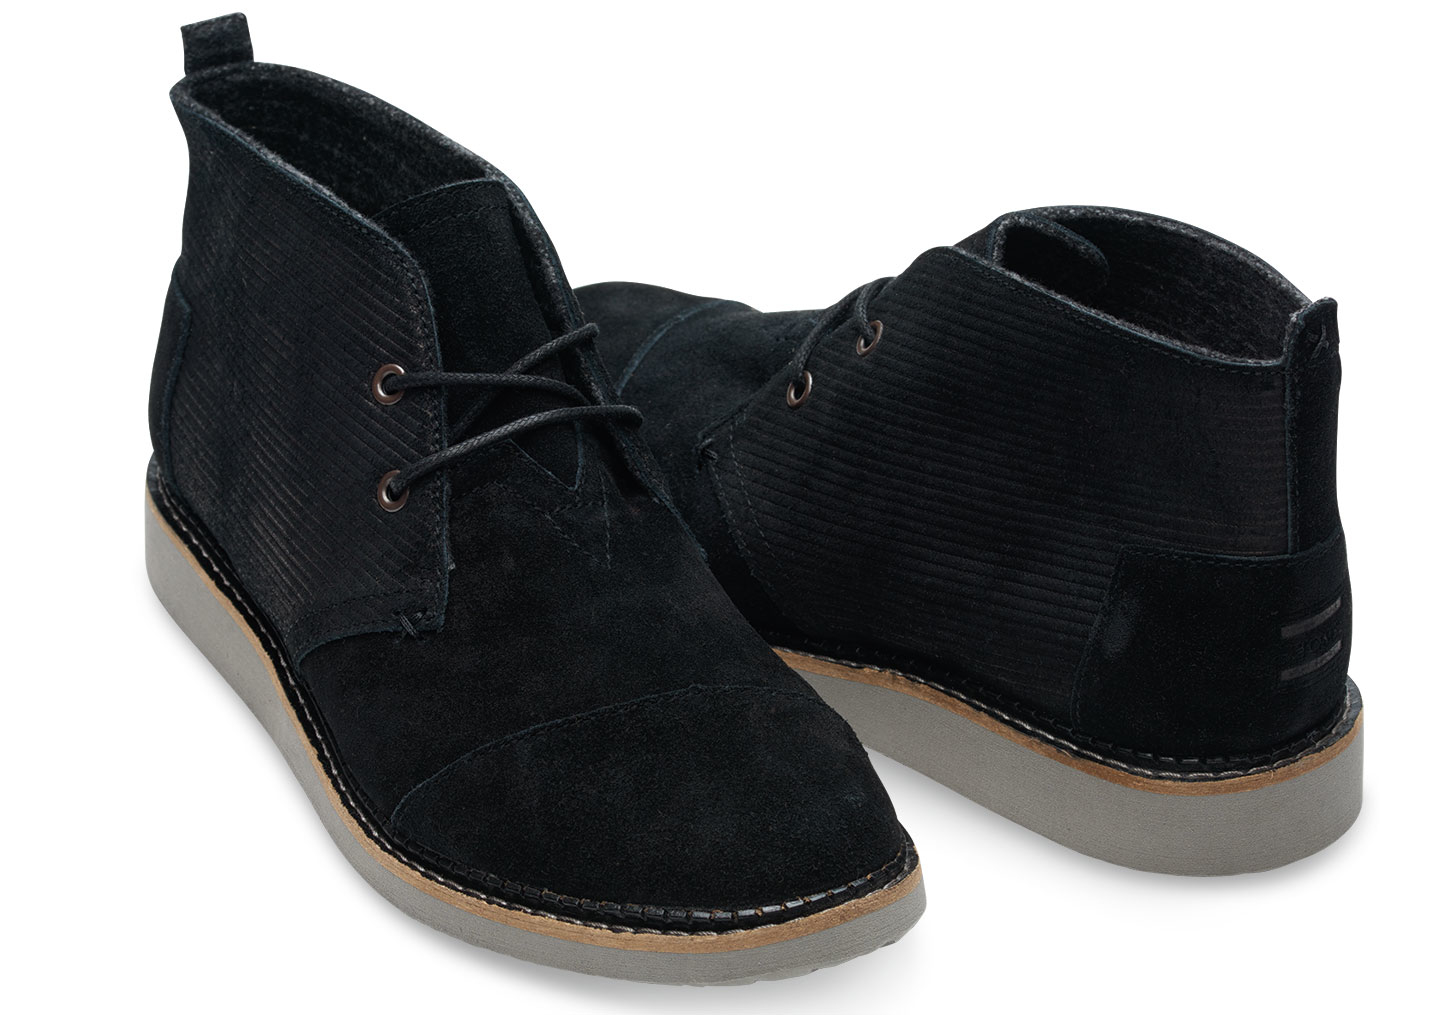 Toms Black Embossed Suede Men&39s Mateo Chukka Boots in Black for